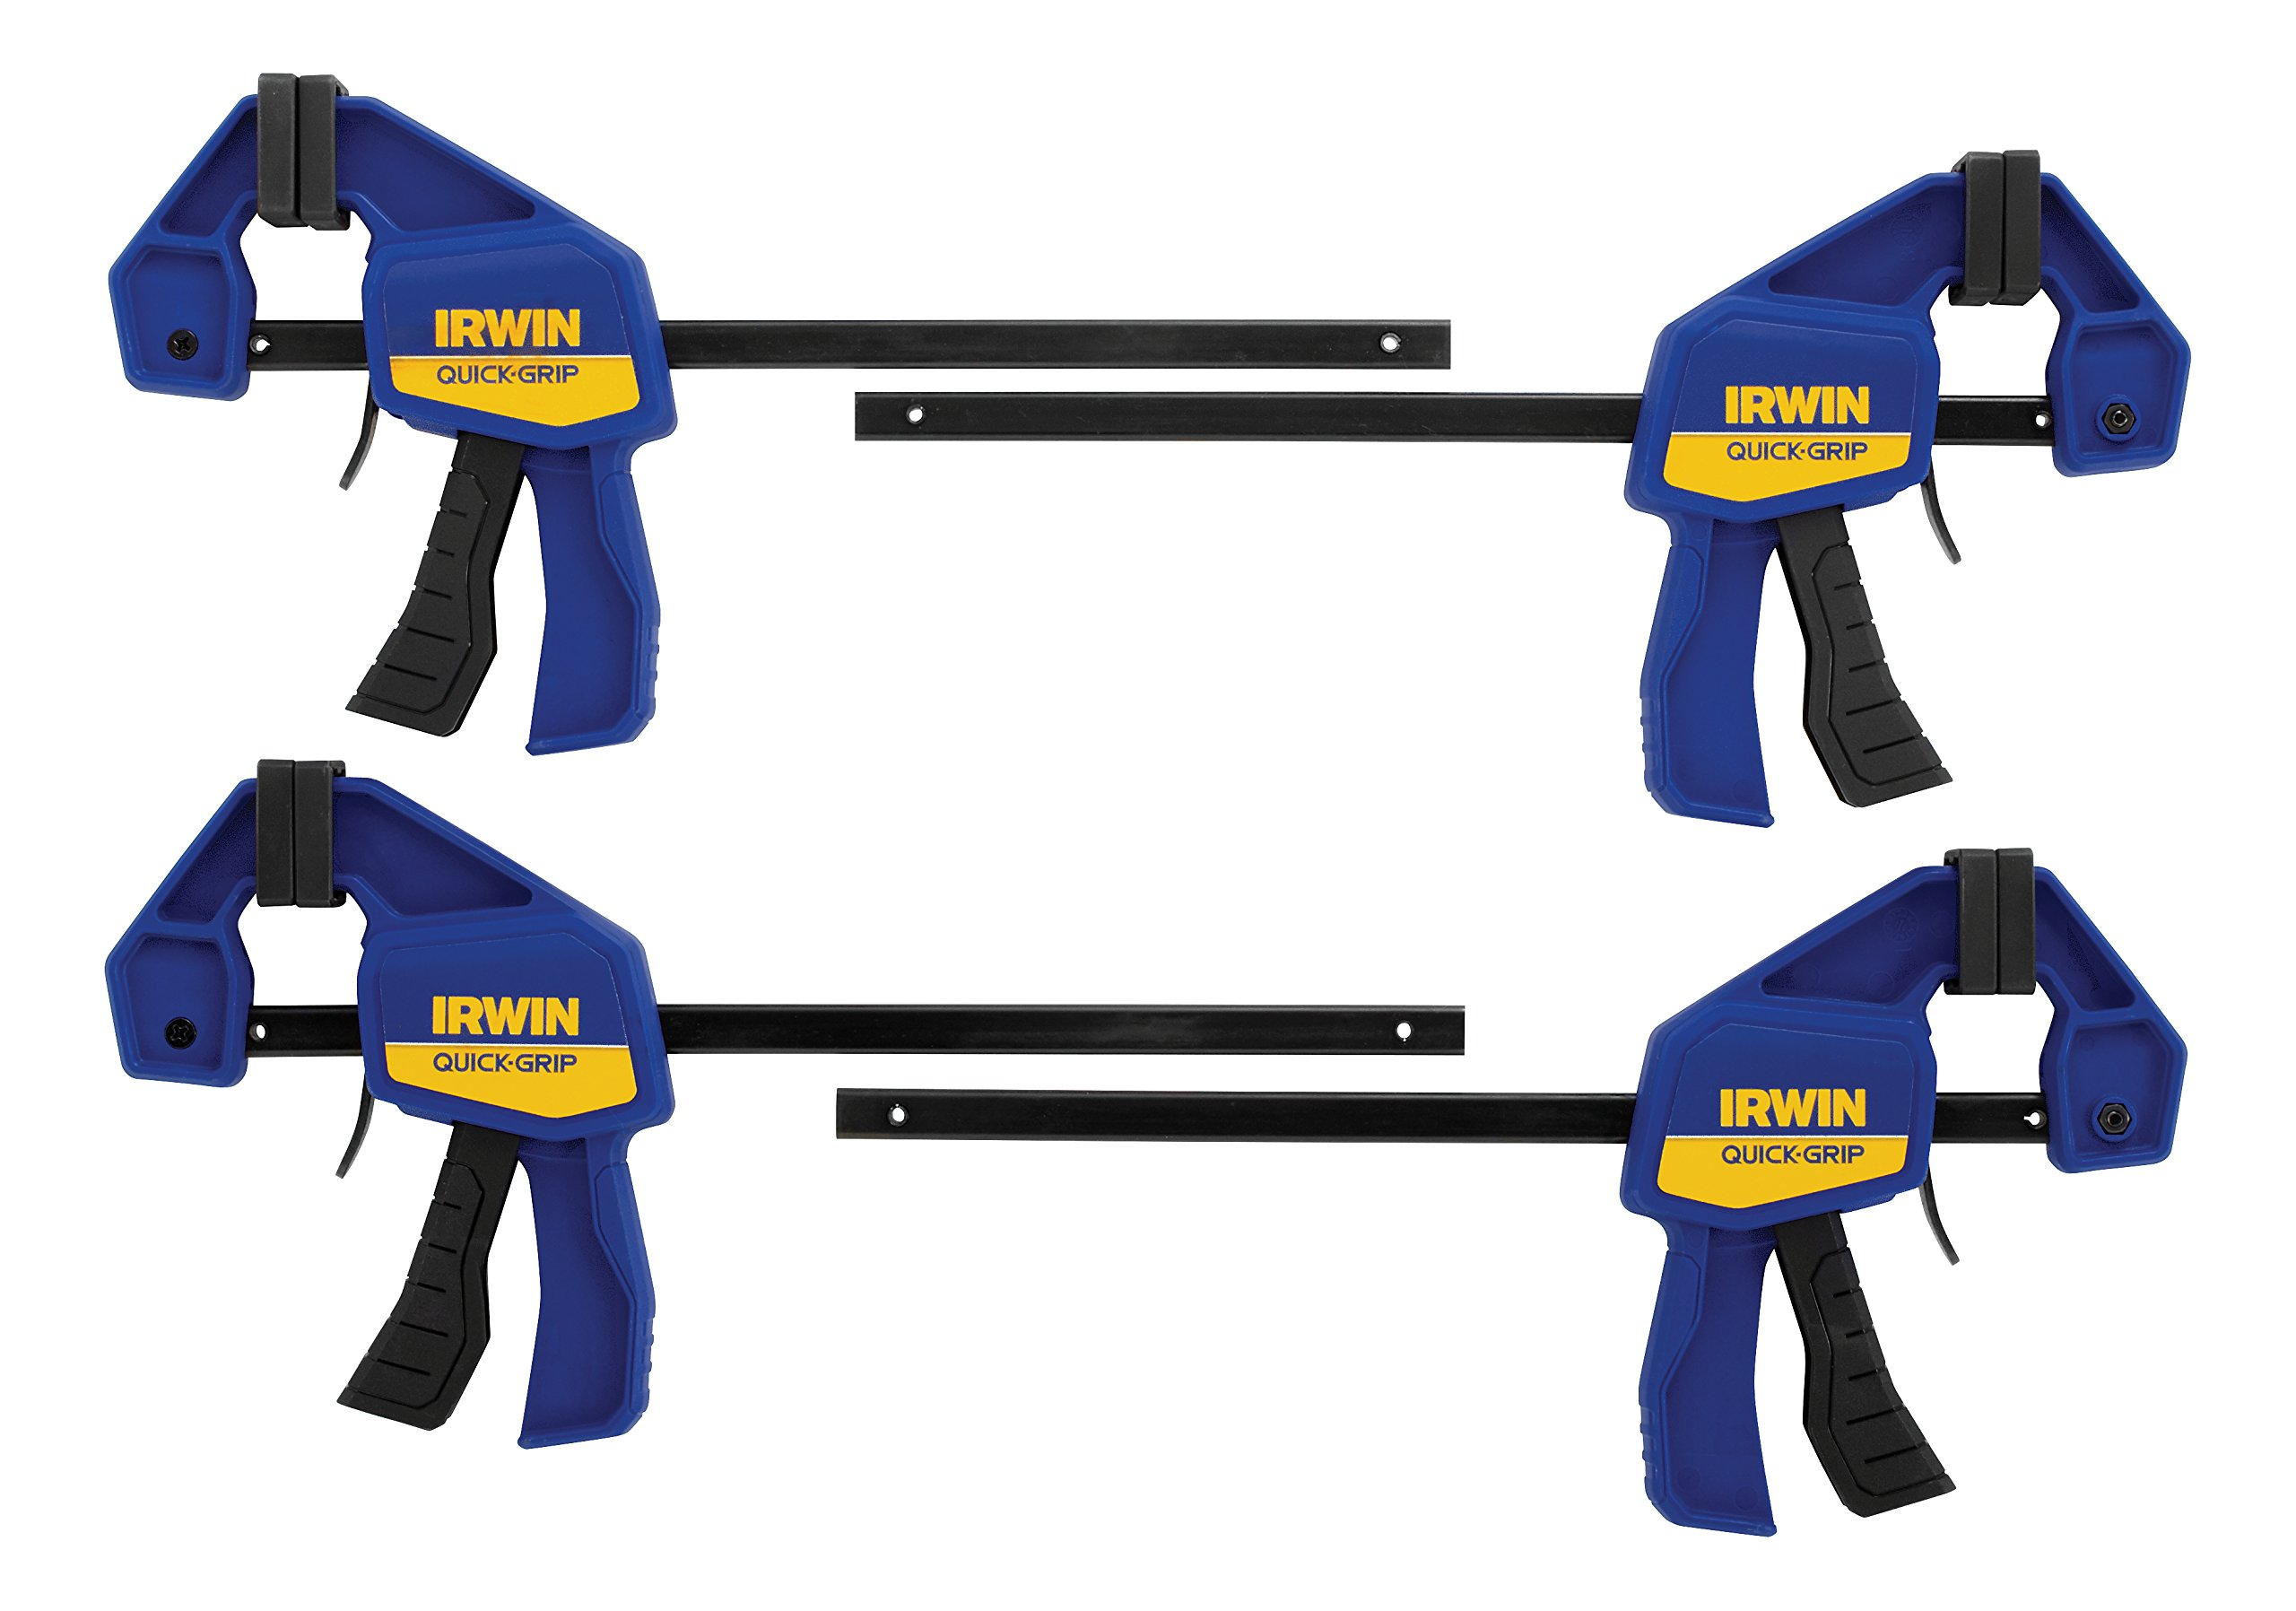 IRWIN QUICK-GRIP 1964758 One-Handed Mini Bar Clamp 4 Pack, 6''